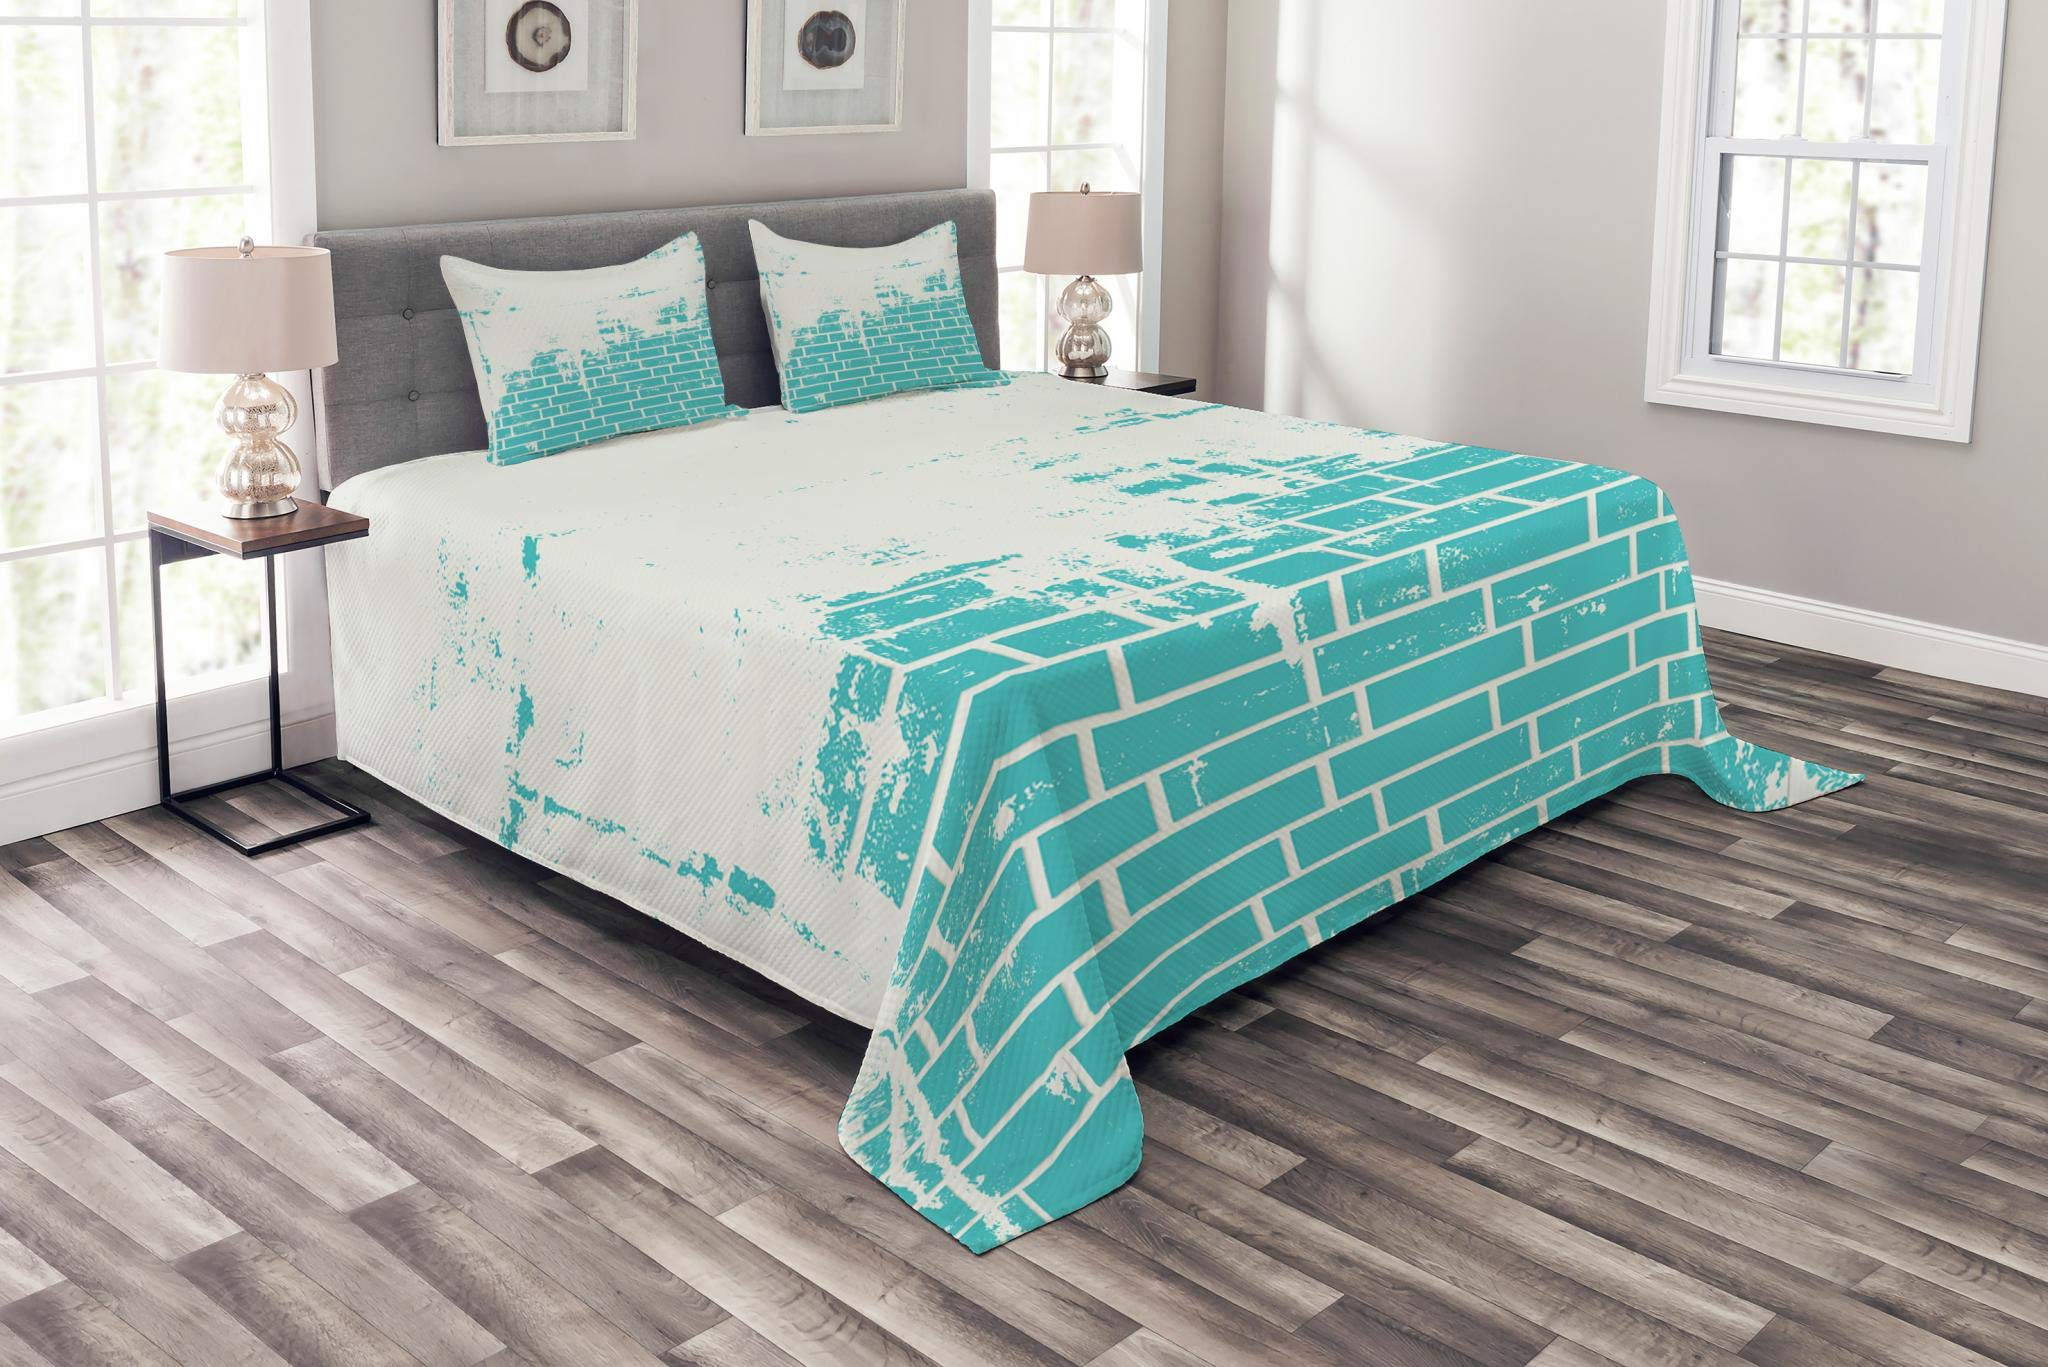 Lunarable Turquoise Bedspread Set Queen Size, Plastered Brick Wall Aged Masonry Vintage Construction Stylized Modern Art Print, Decorative Quilted 3 Piece Coverlet Set with 2 Pillow Shams, Blue White